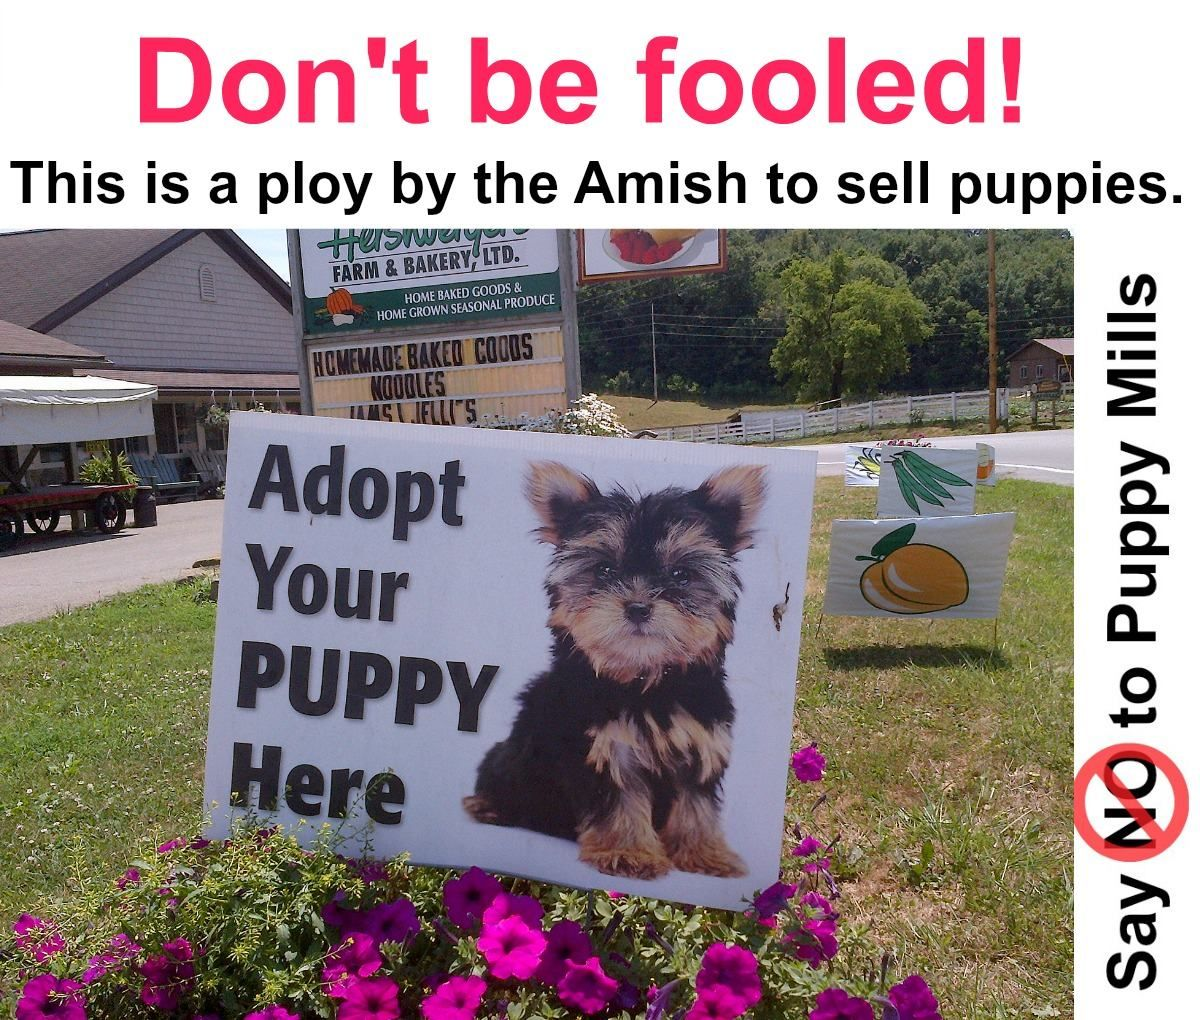 The Amish are amongst the WORST of the irresponsible